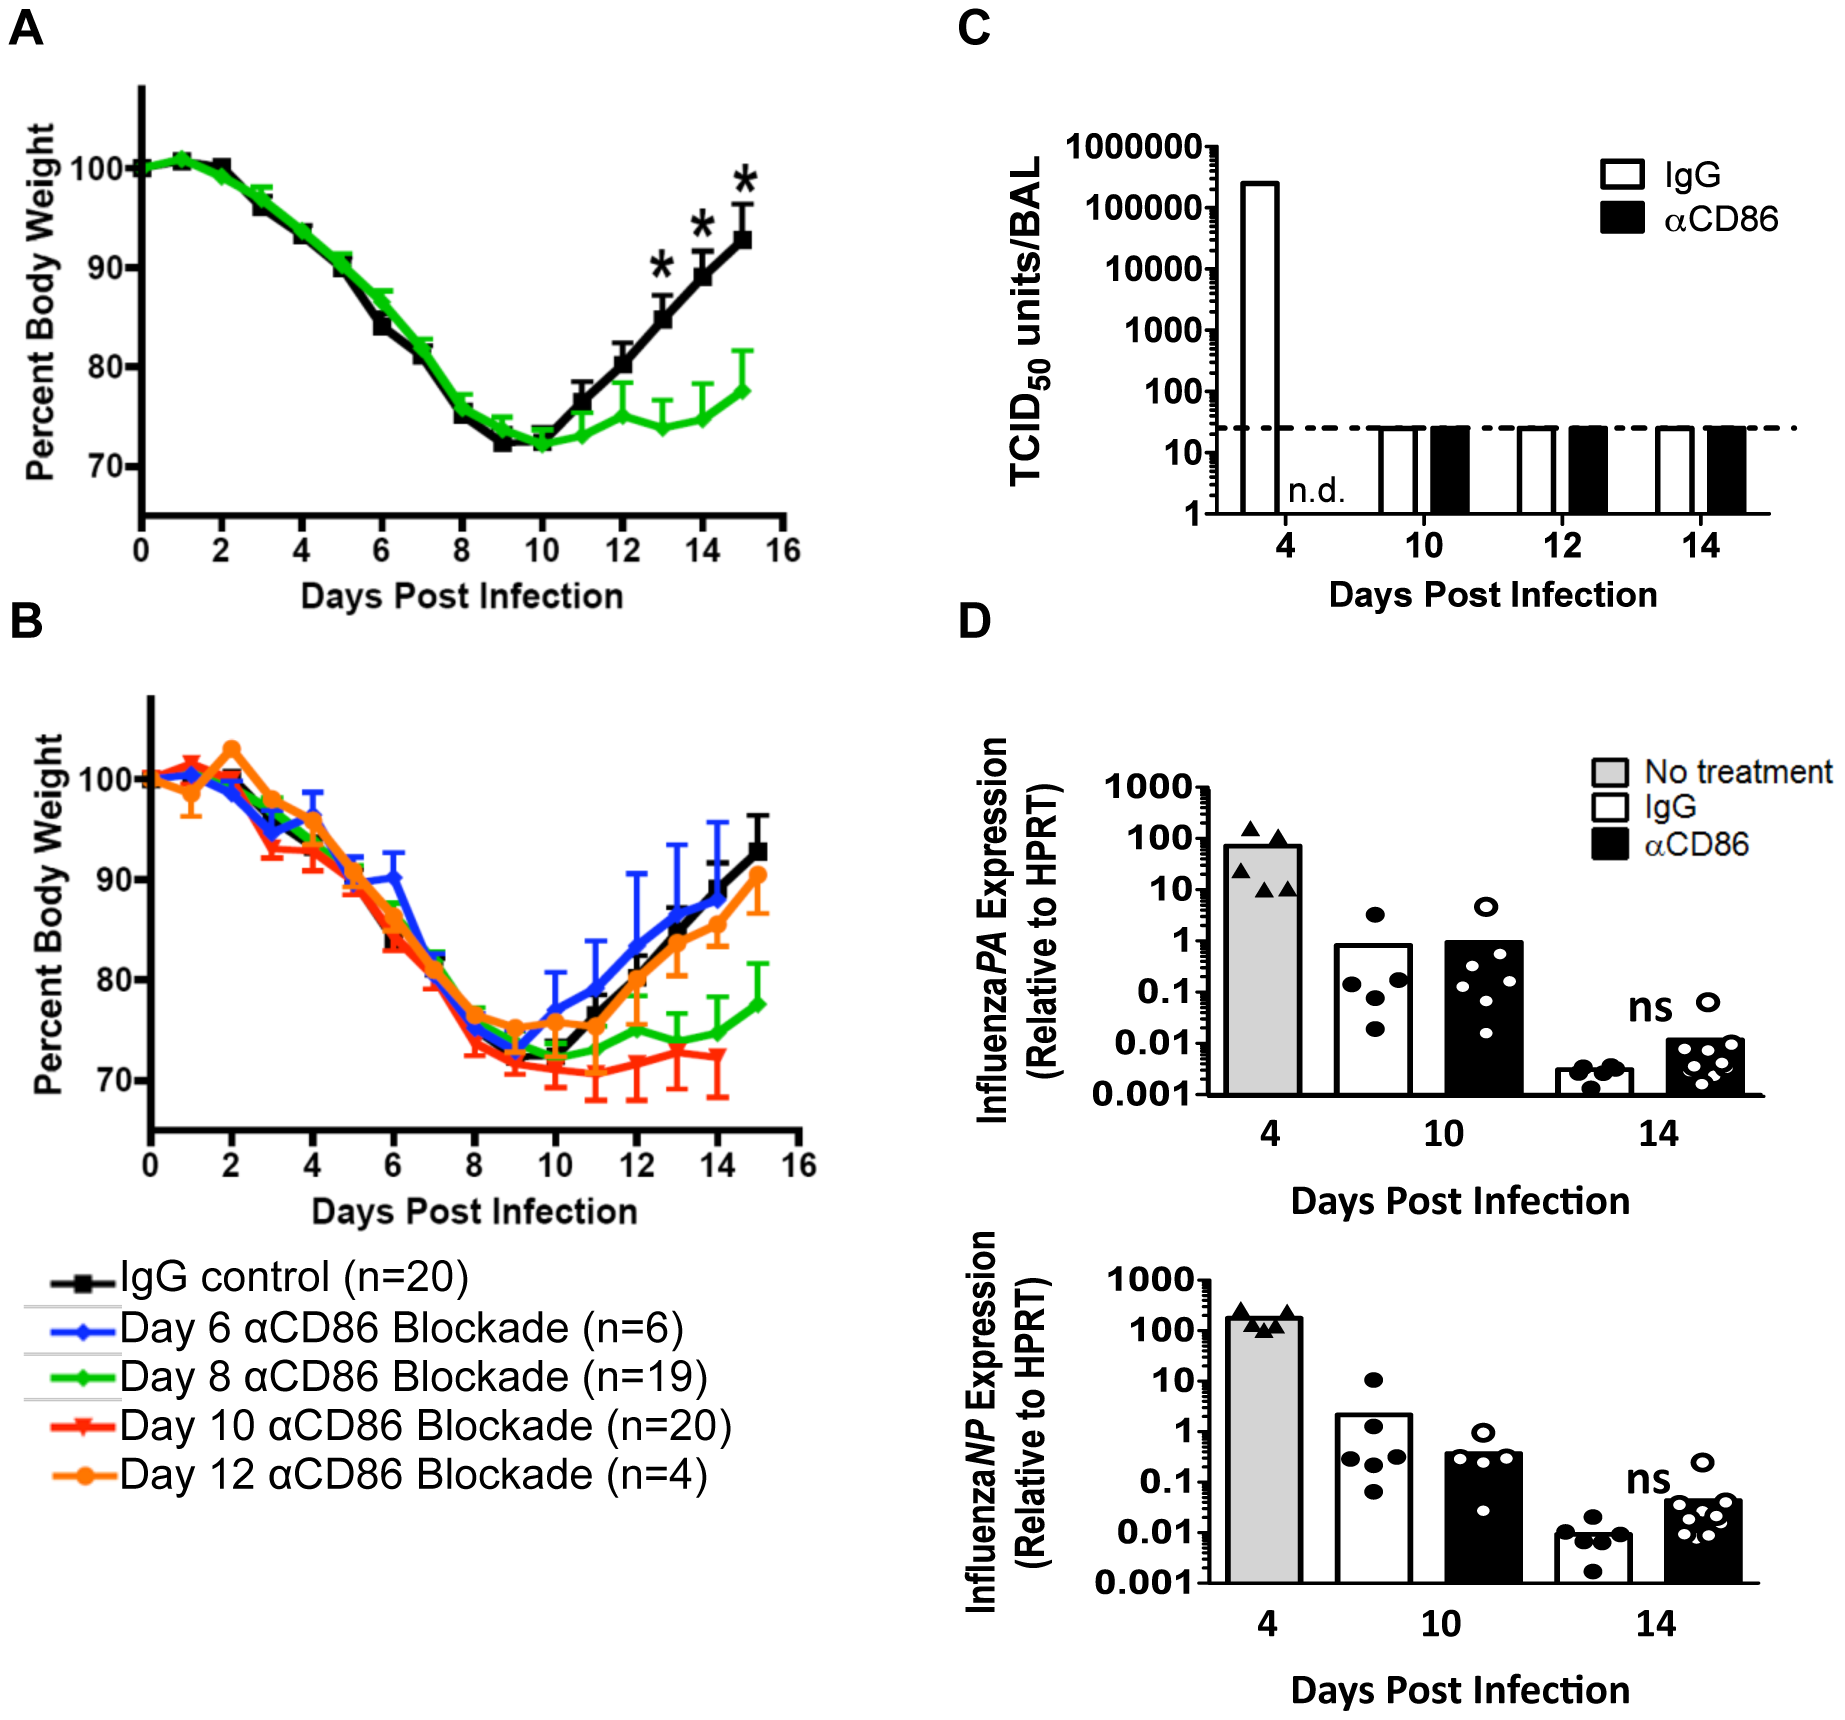 CD86 co-stimulation is required for optimal recovery following IAV infection.